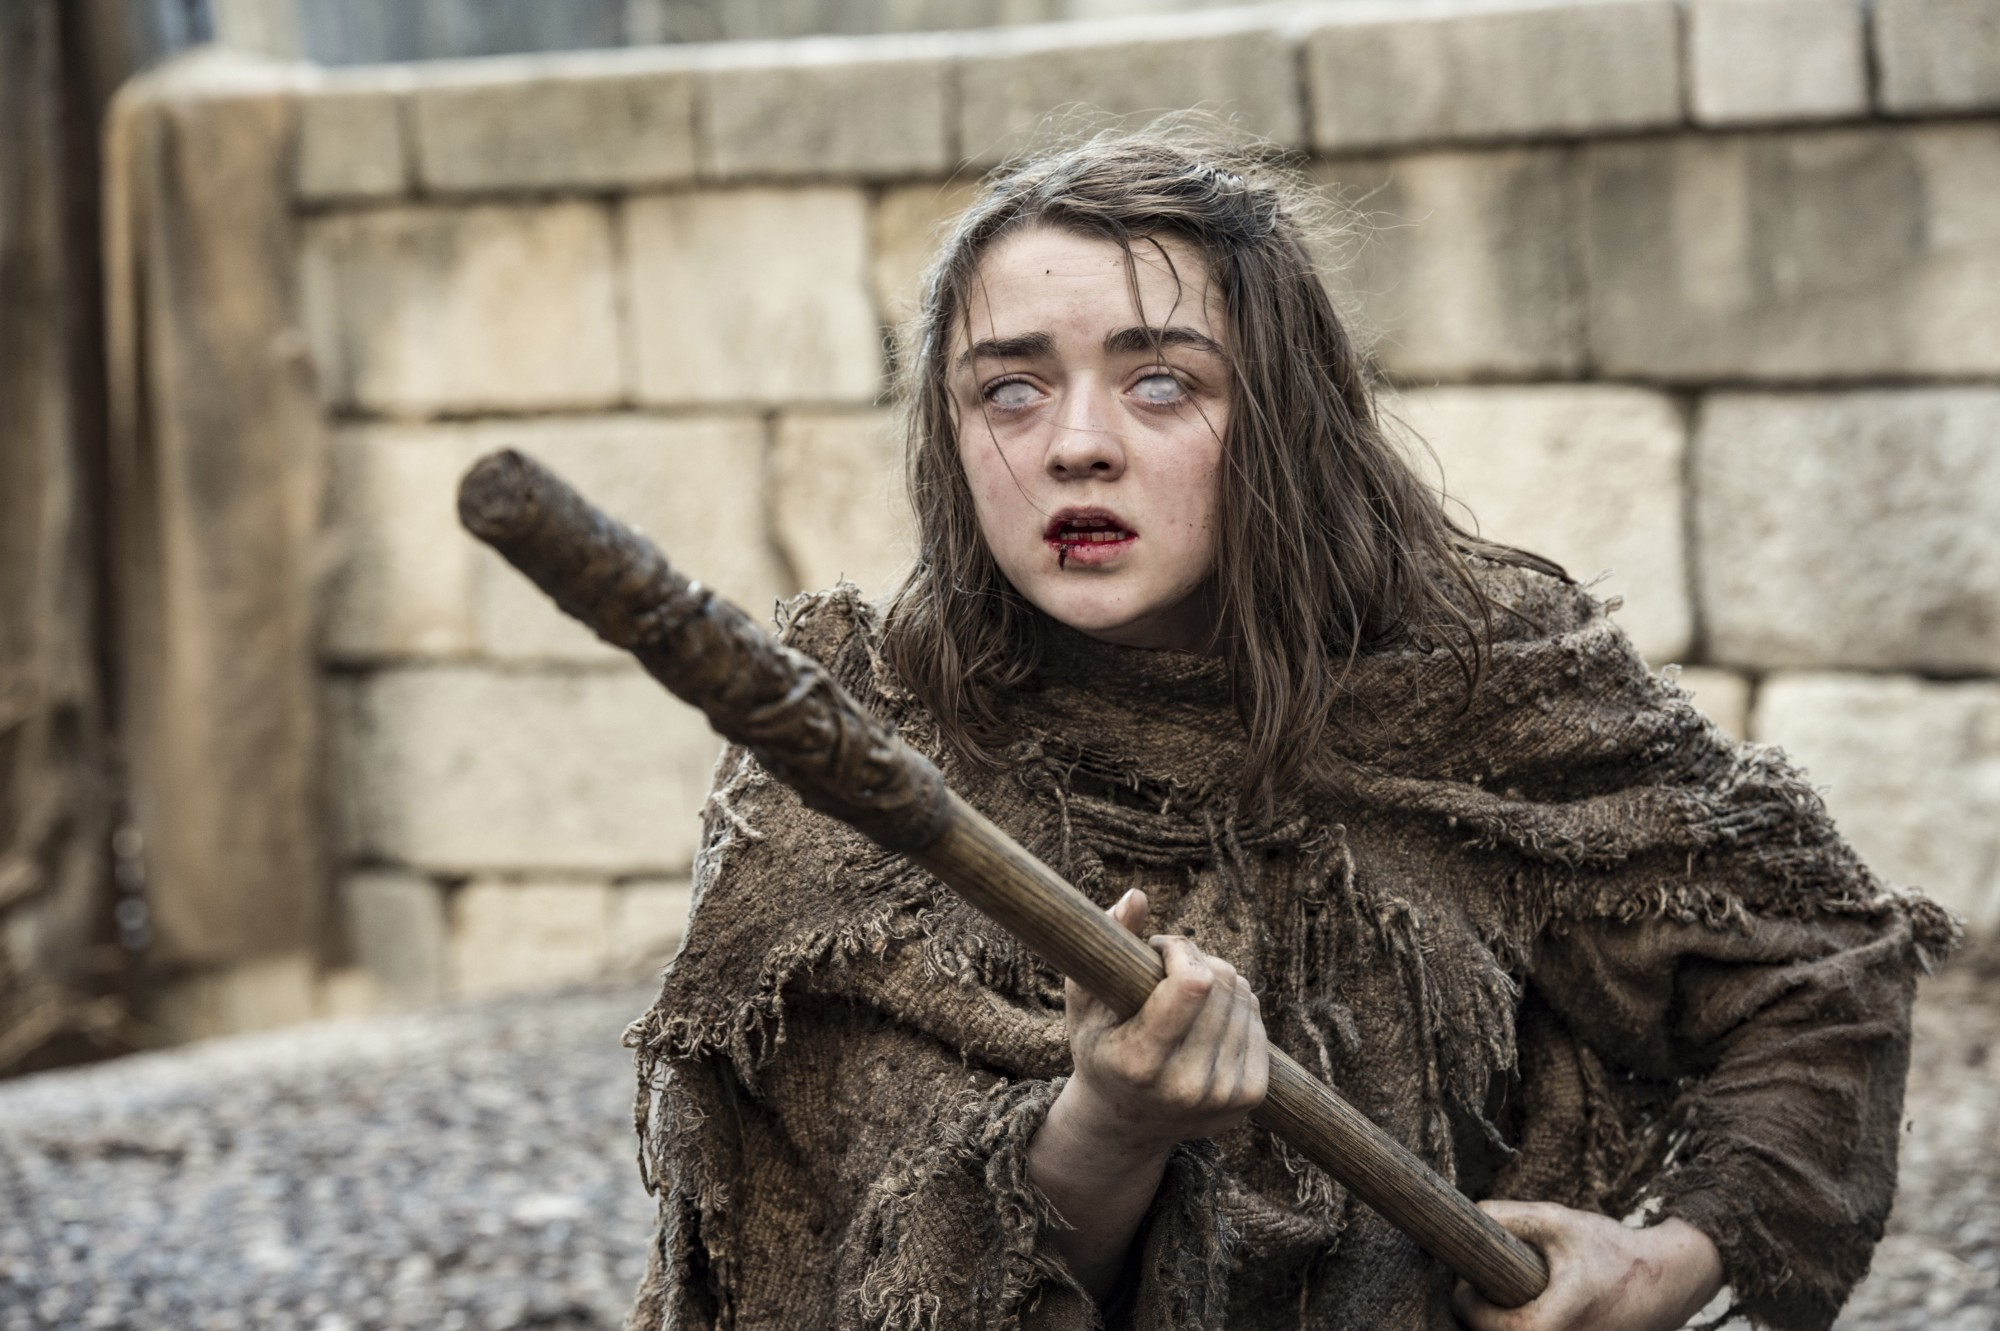 GAME OF THRONES FIRST LOOK: SEASON 6 PHOTOGRAPHY